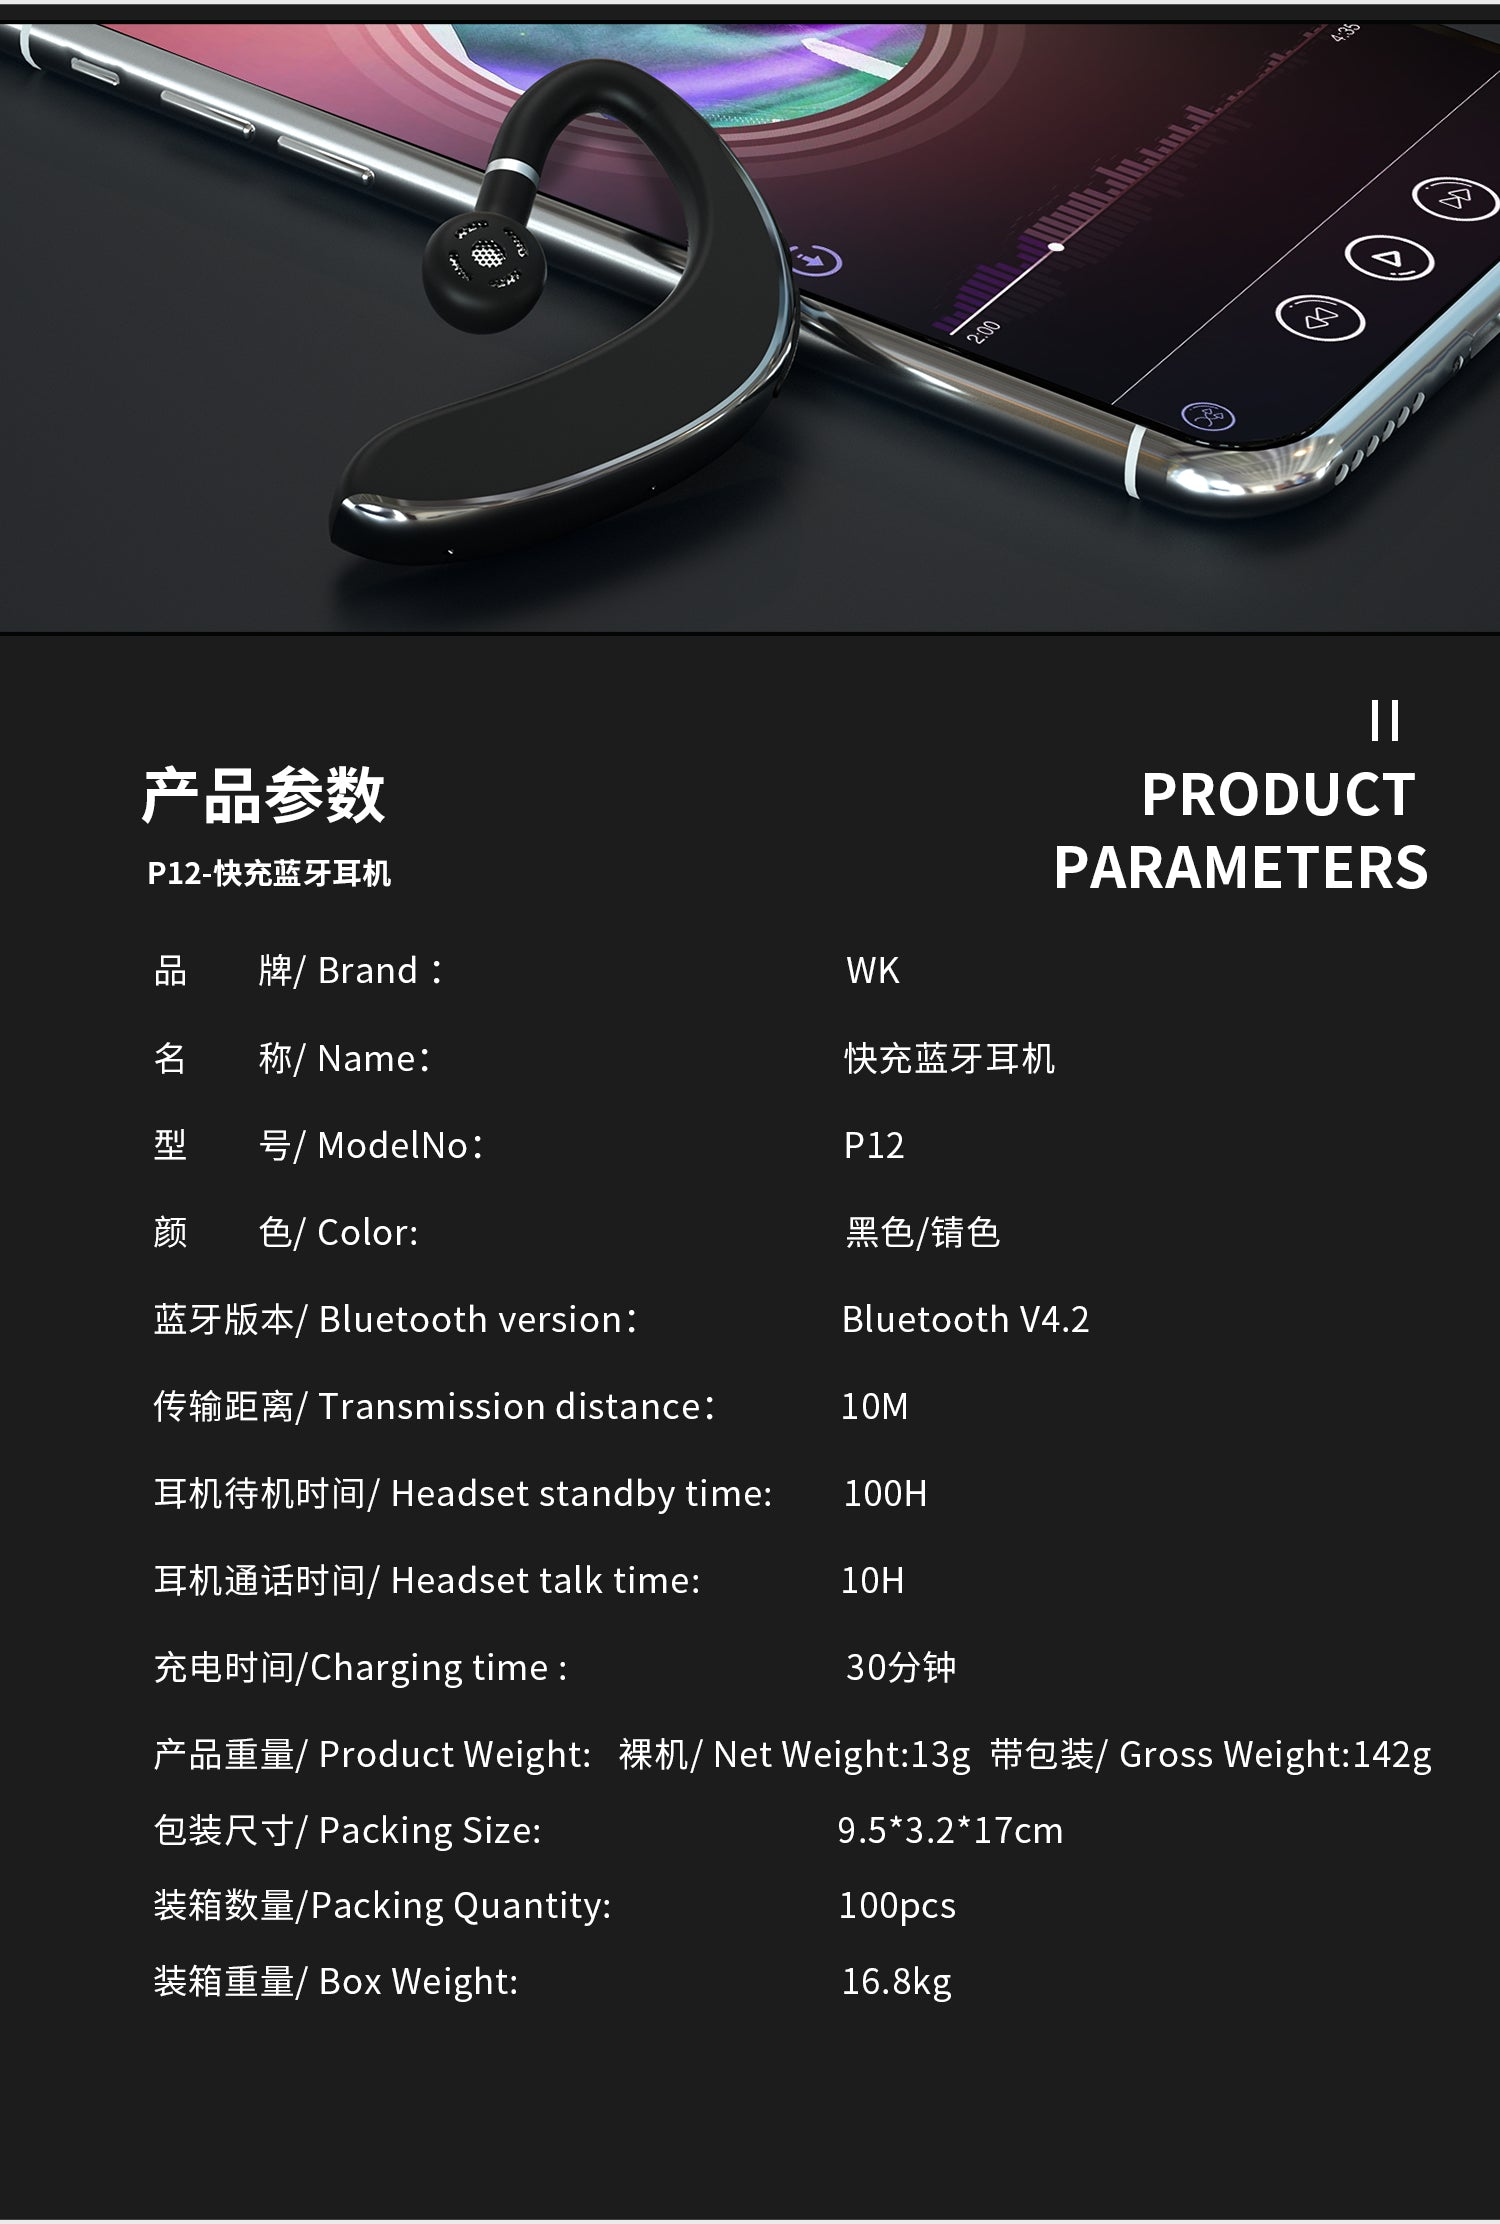 P12 Super Fast Charging Wireless Headet